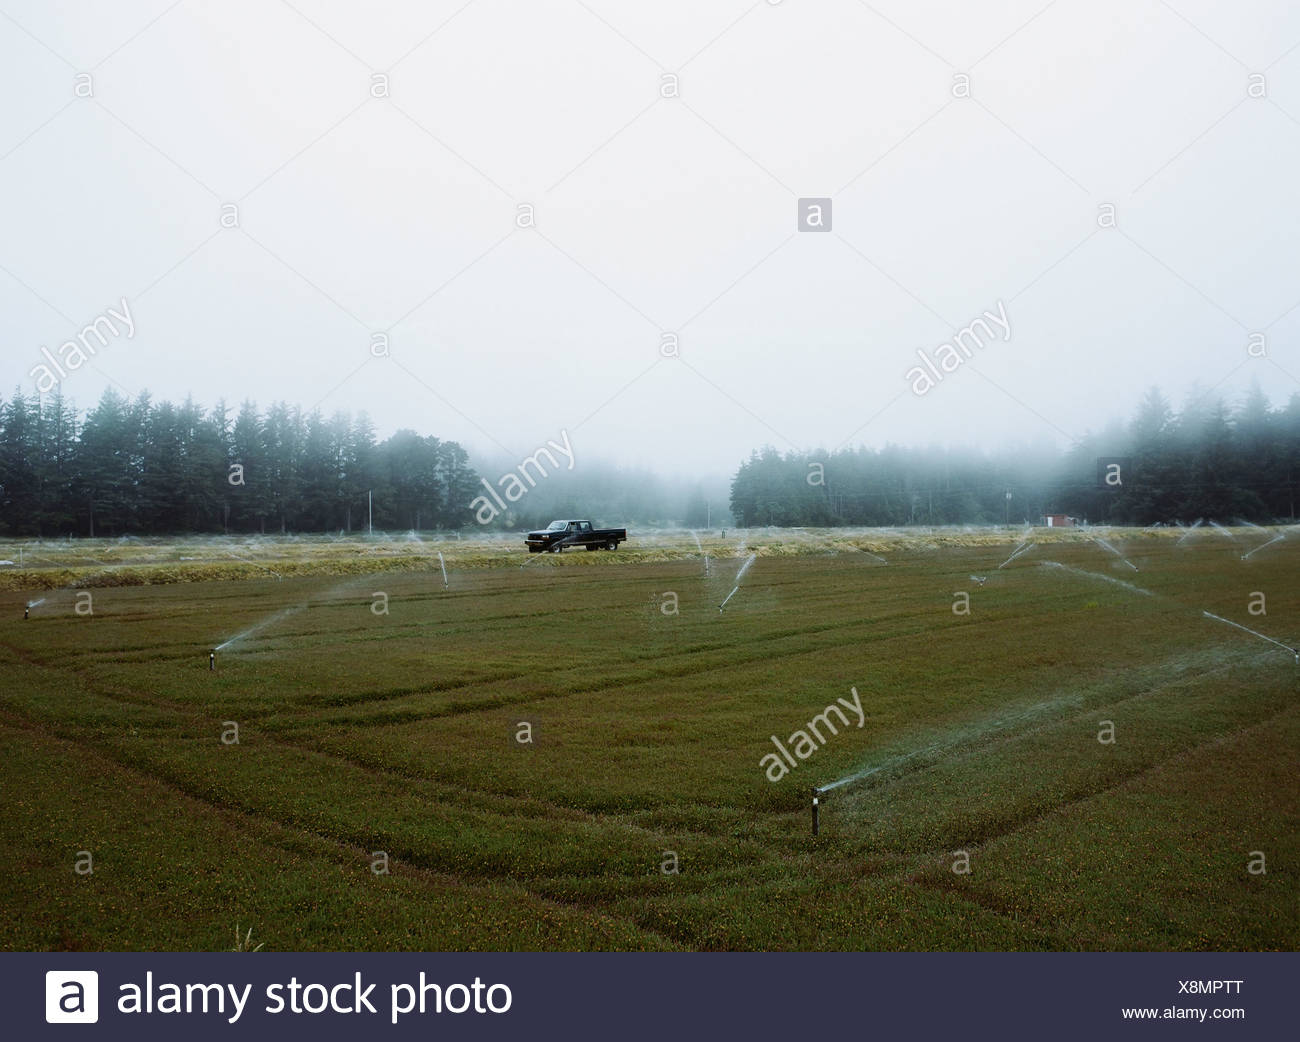 A cranberry farm in Massachusetts The crops growing in the fields - Stock Image